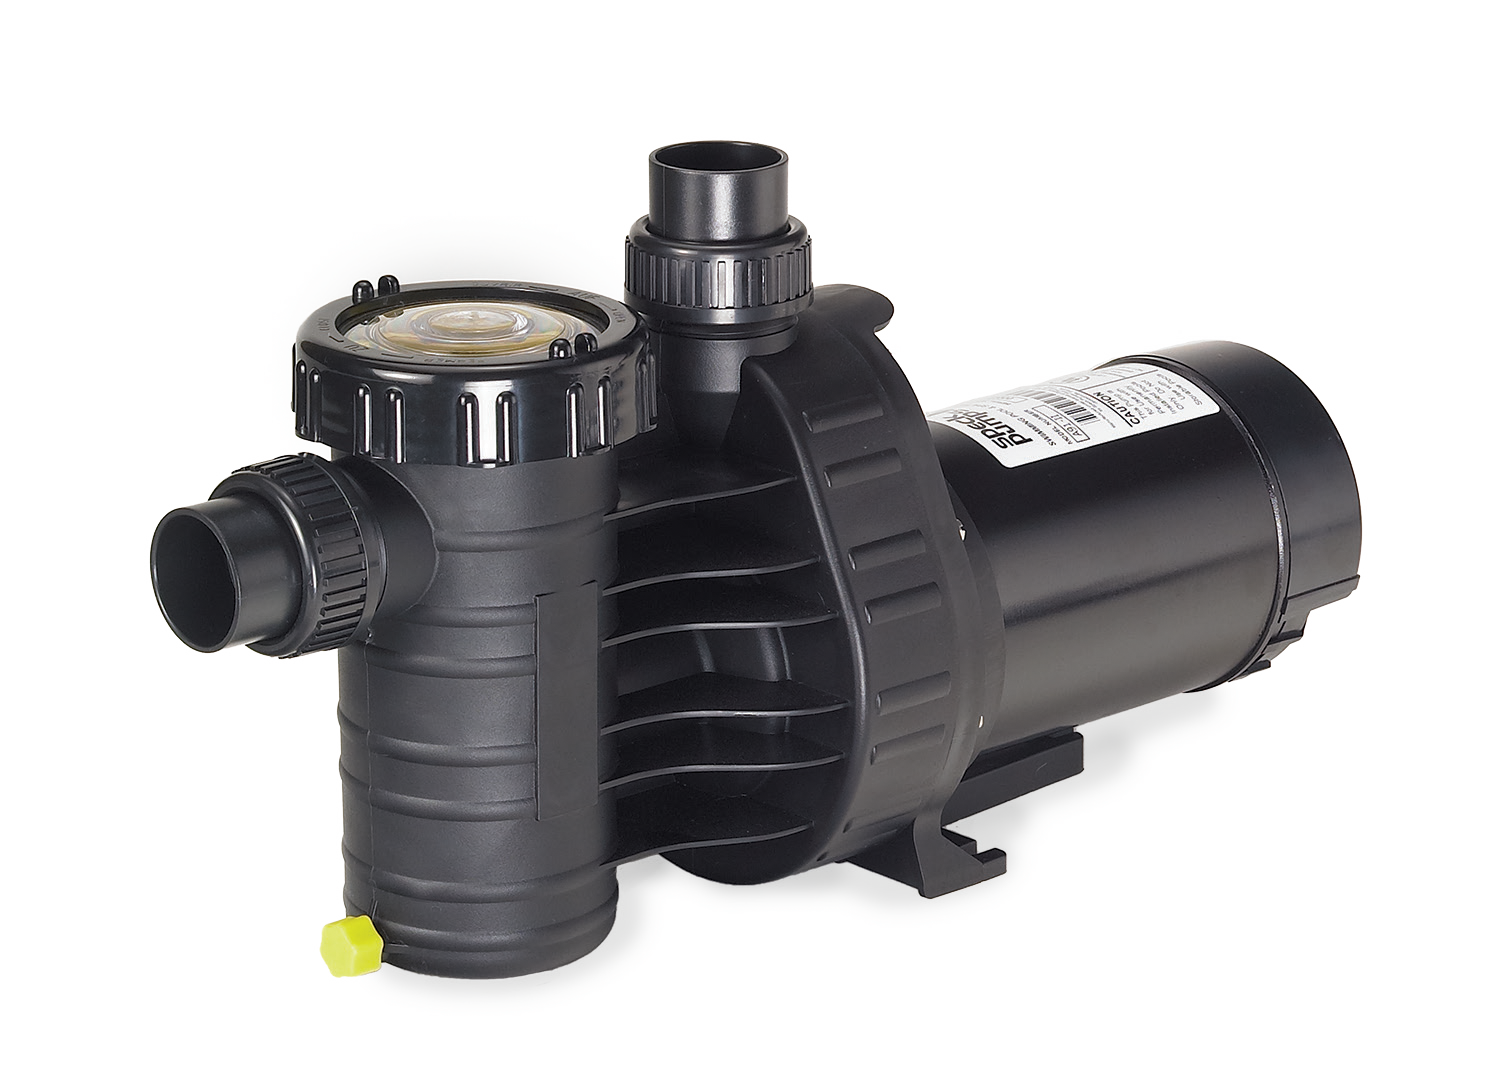 Speck®A91 - The Speck Model A91 above-ground and small in-ground pool pump incorporates many upgraded features expected only from larger in-ground pumps. The pump is self-priming, extremely quiet, and has an easy on-off, clear two-piece lid. Quick disconnect unions are provided for simple installation and maintenance.